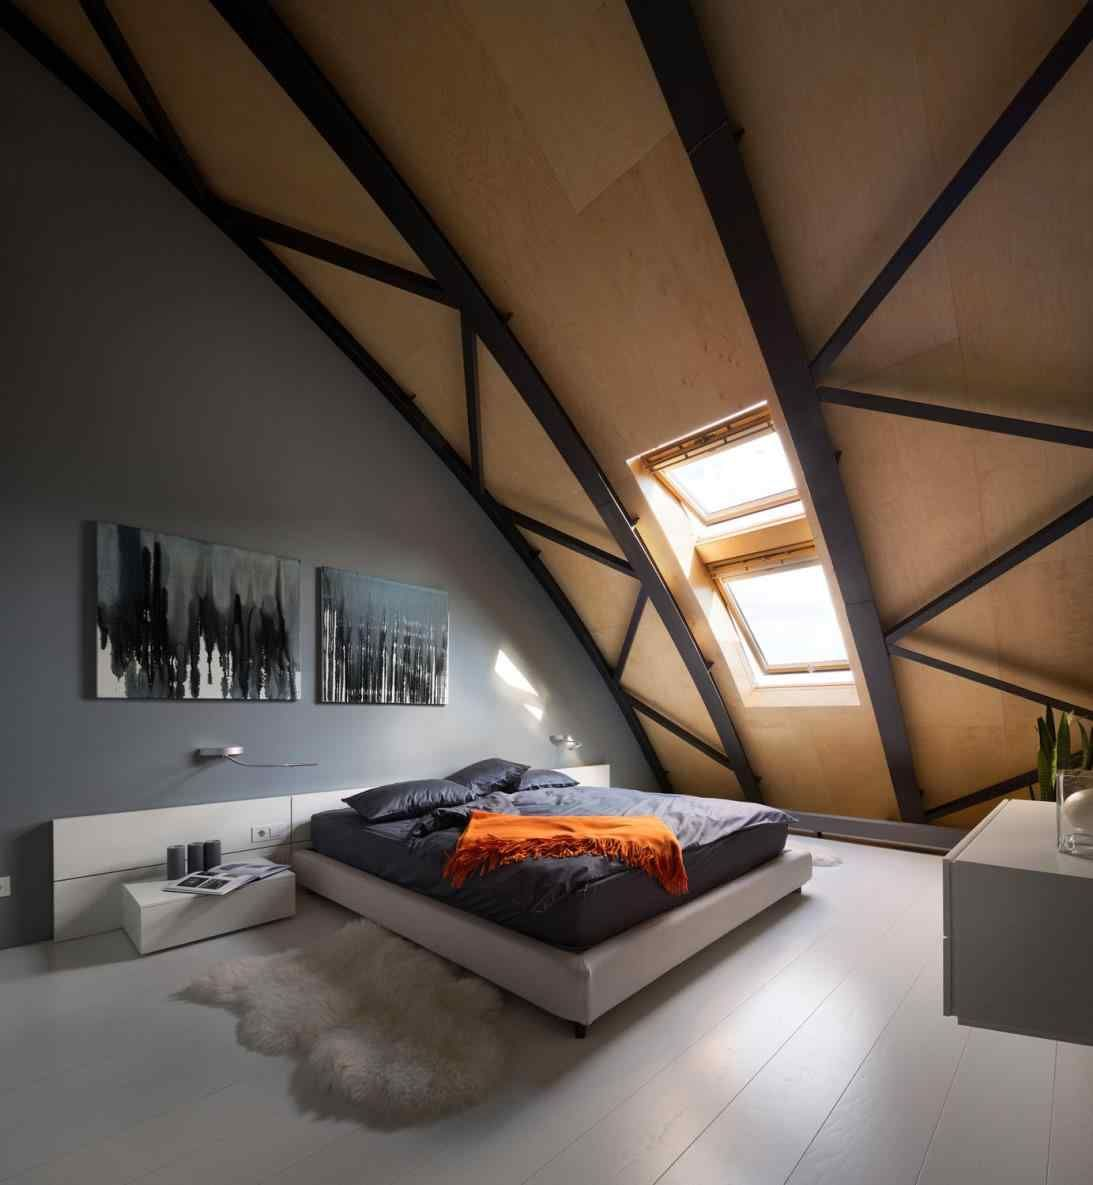 Bedroom interior roof pin by edoem on contemporary penthouse kiev  pinterest  penthouses